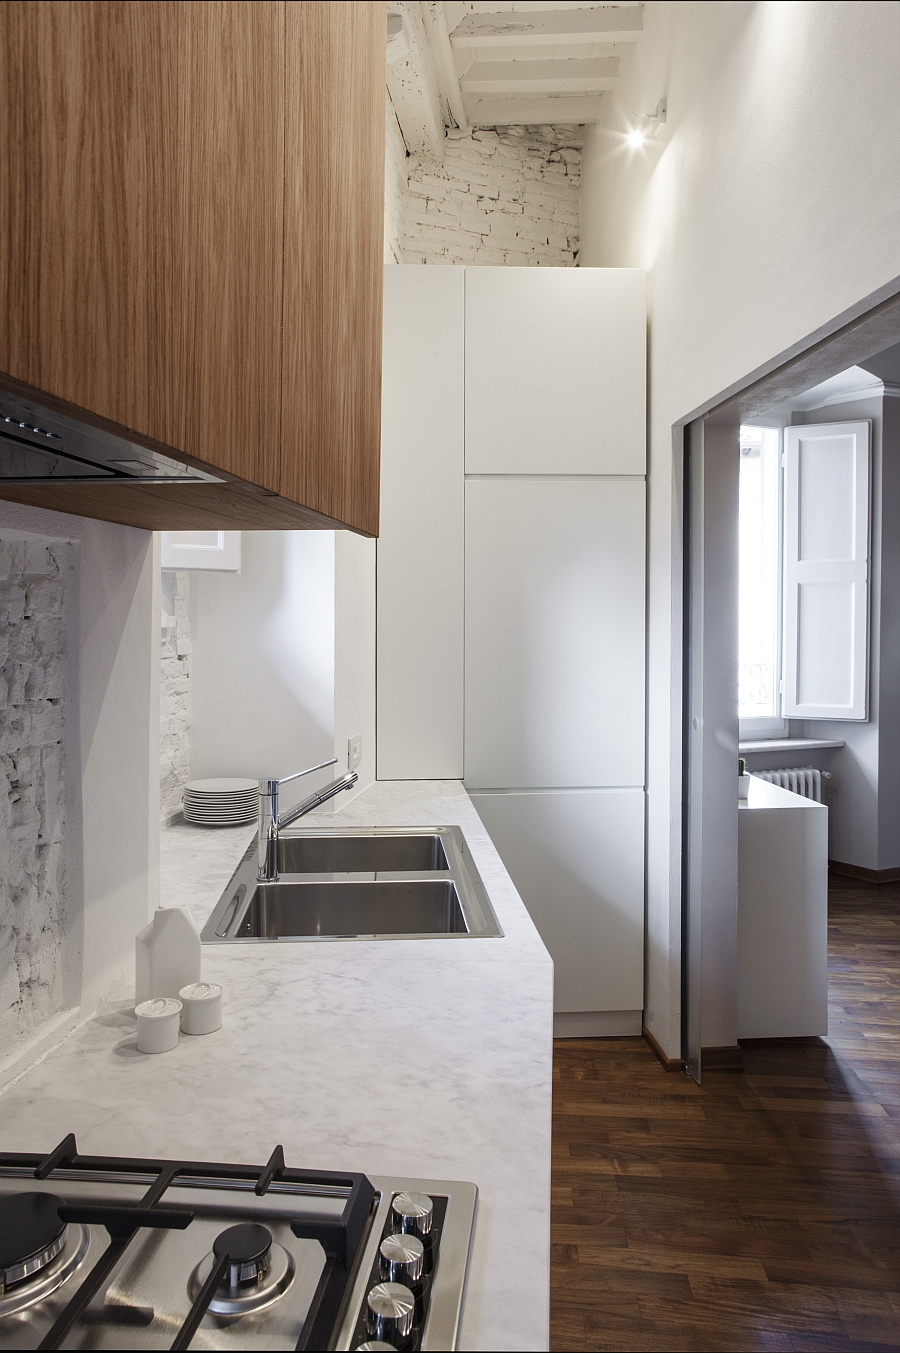 Innovative and compact kitchen utilizes available space to the hilt